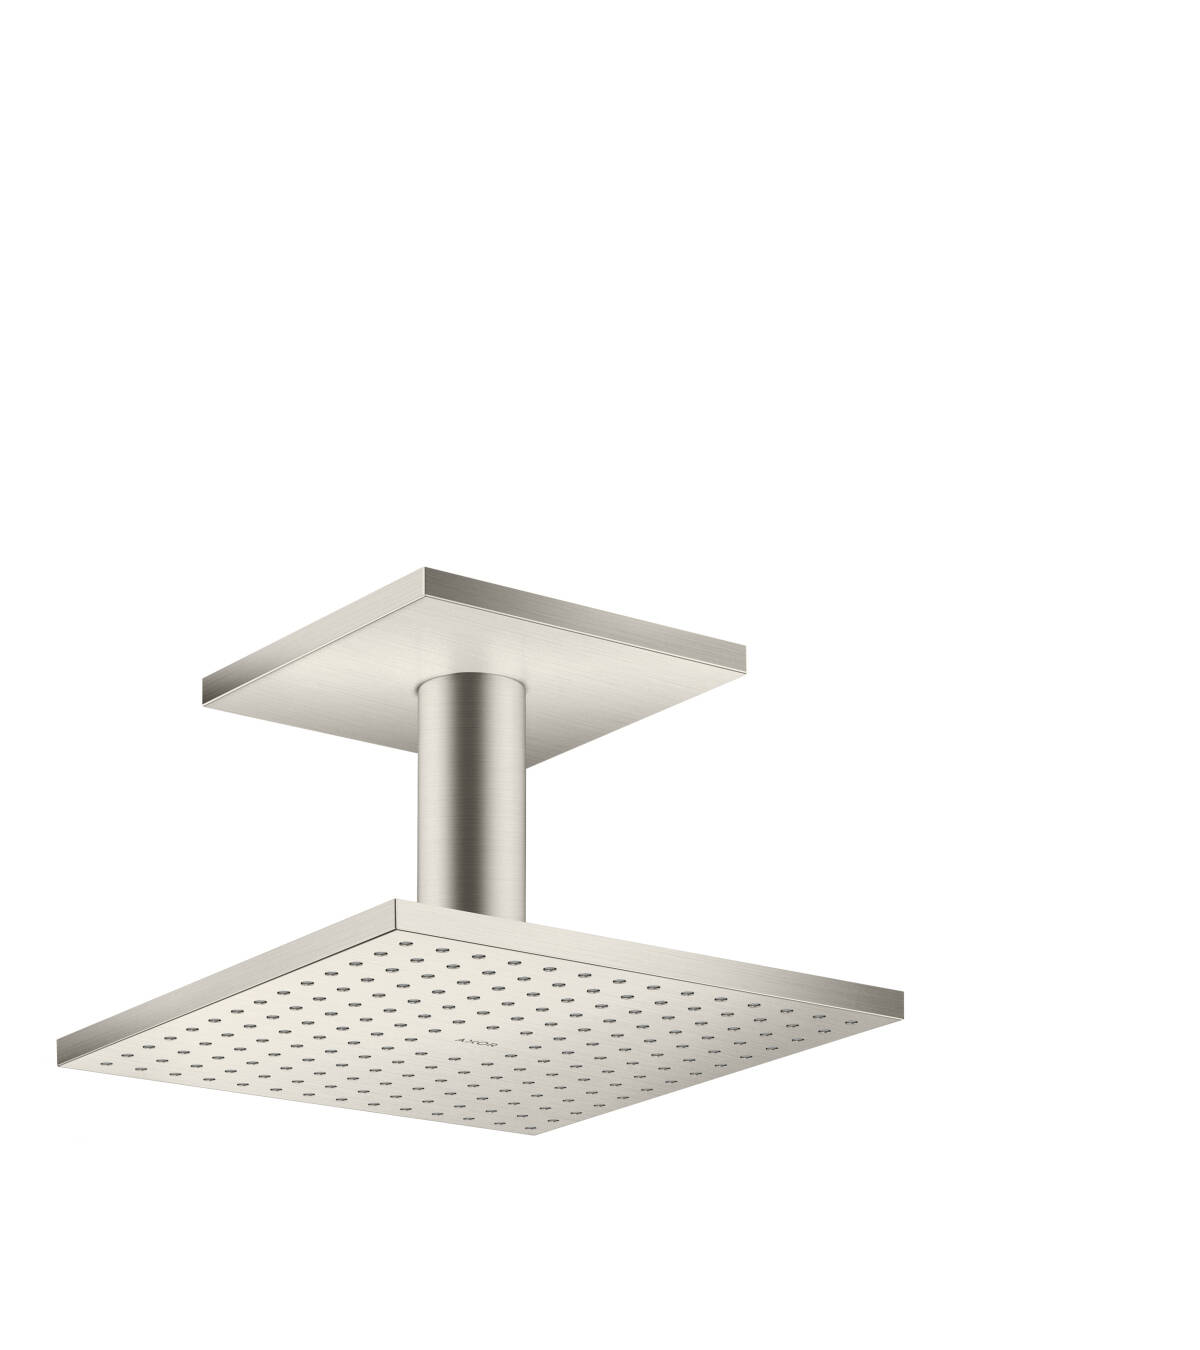 Overhead shower 250/250 1jet with ceiling connection, Stainless Steel Optic, 35308800